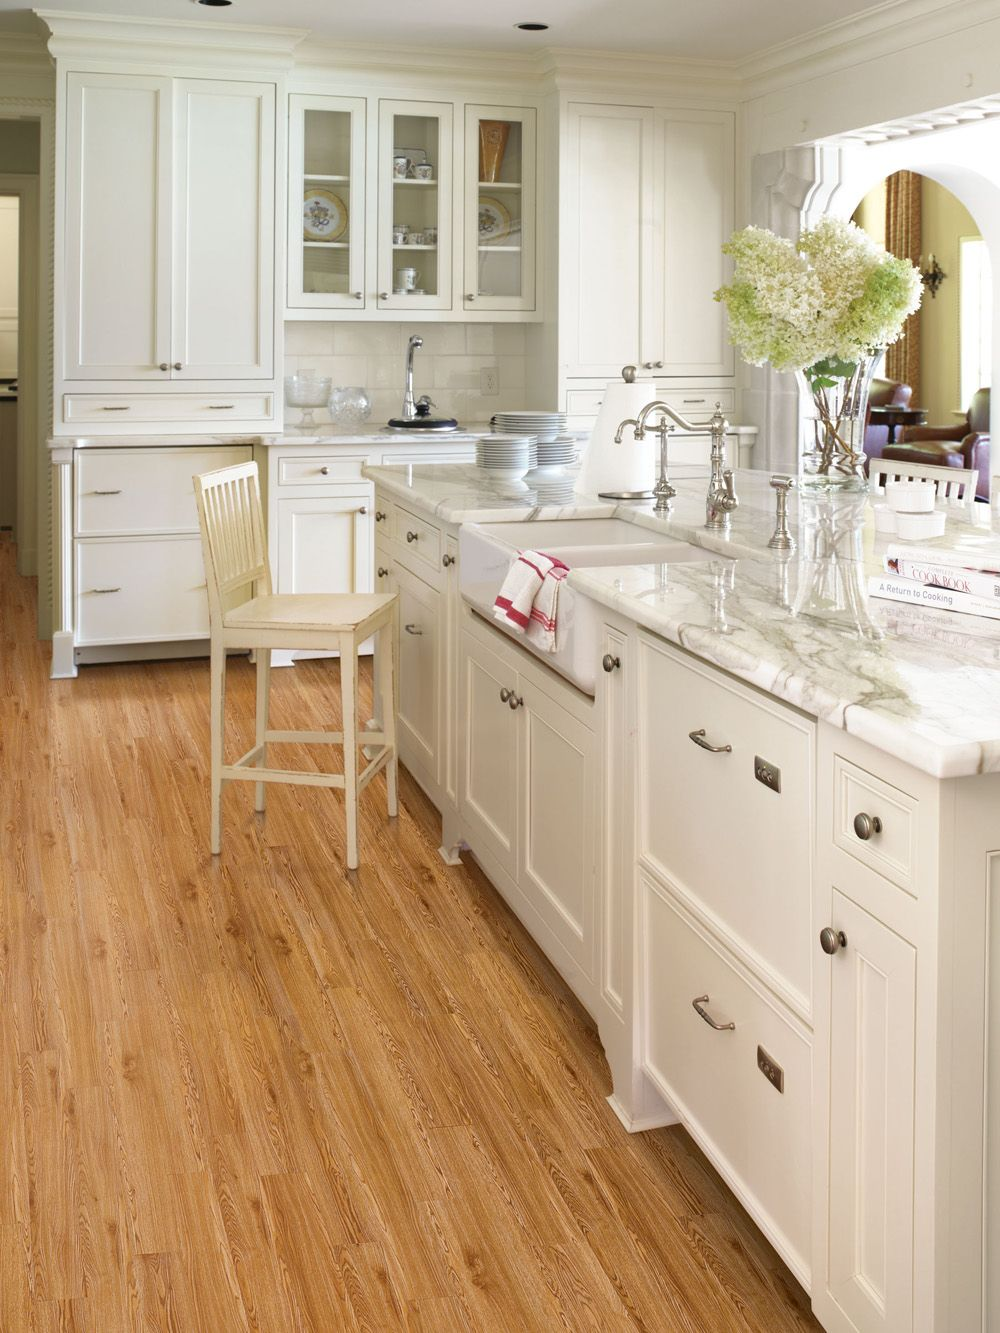 For a cozy yet modern kitchen, pair your light wood floors ...